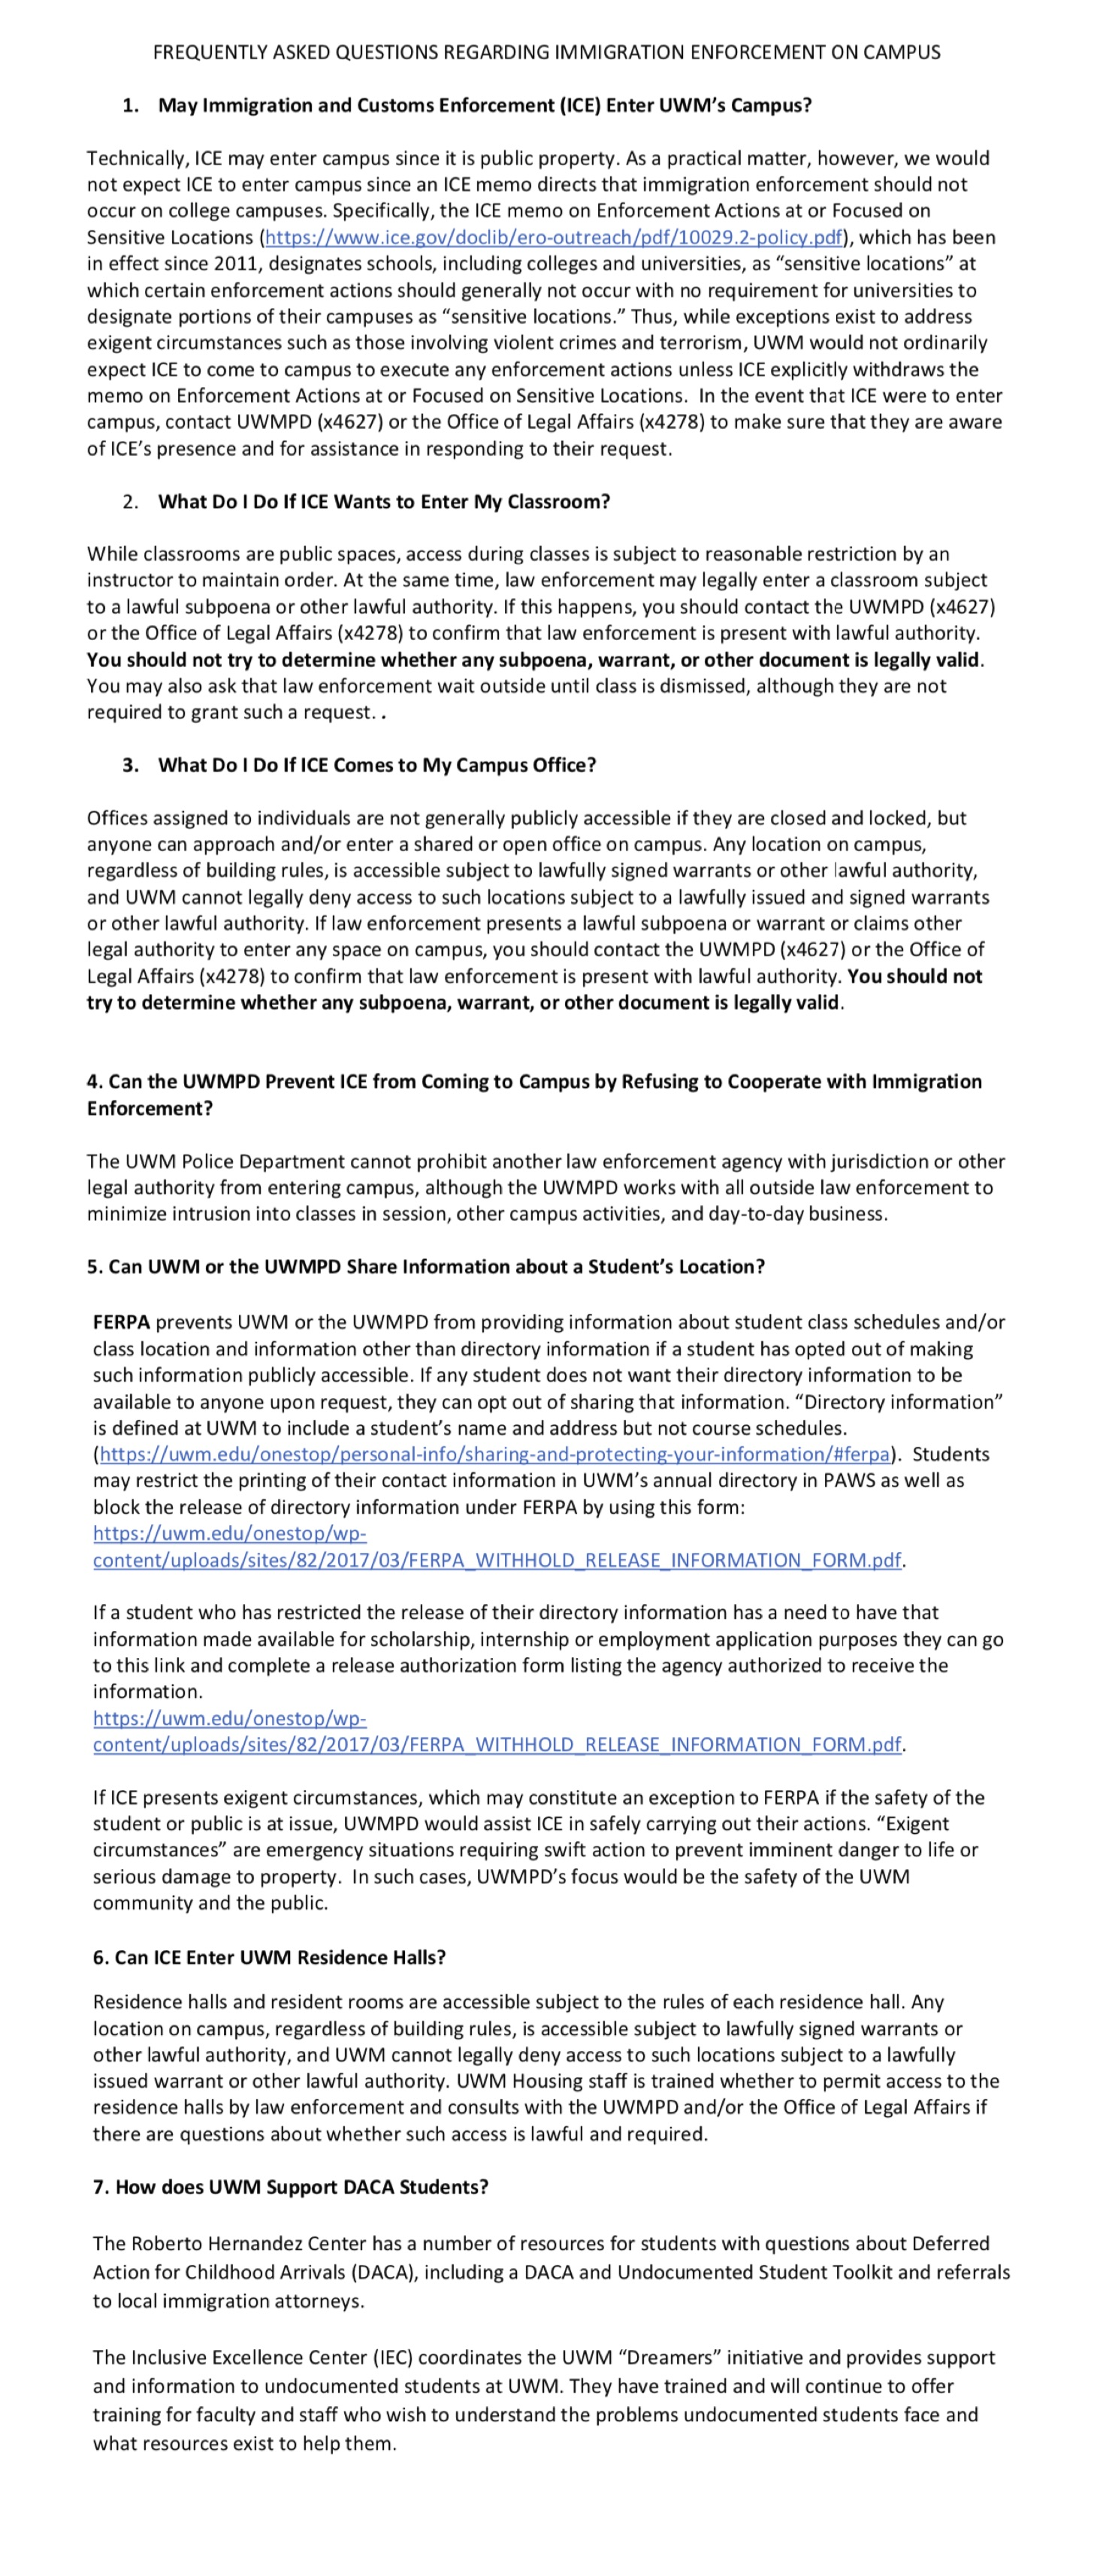 Uw Milwaukee Outline Of Policies Impacting Immigrant And